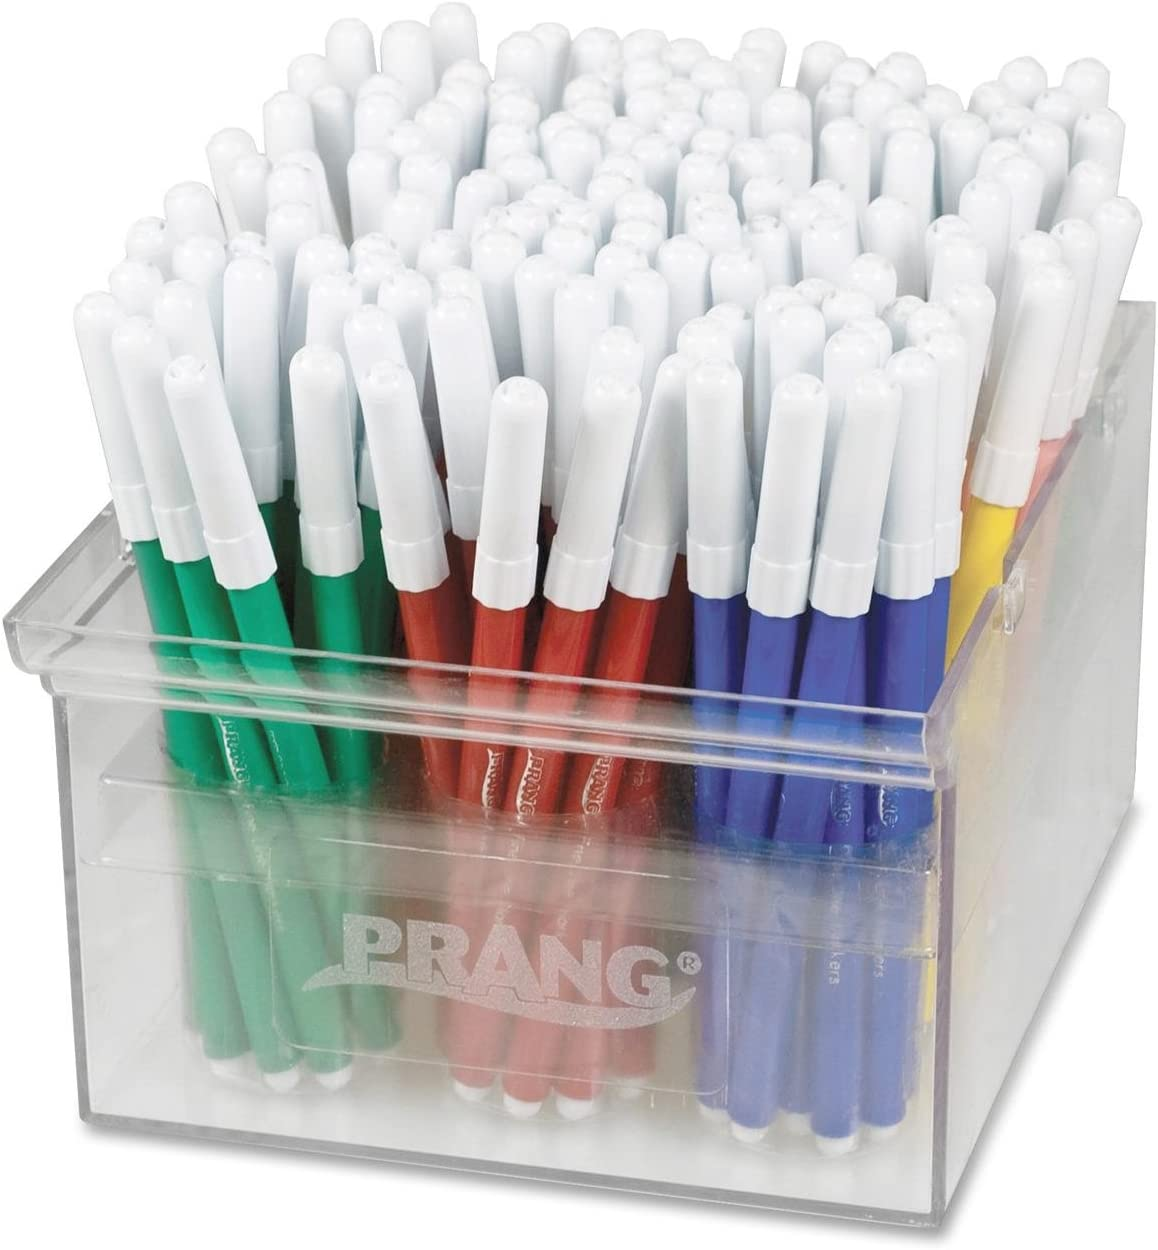 Assorted Colors Set of 96 Prang Classic Art Markers Fine Tip